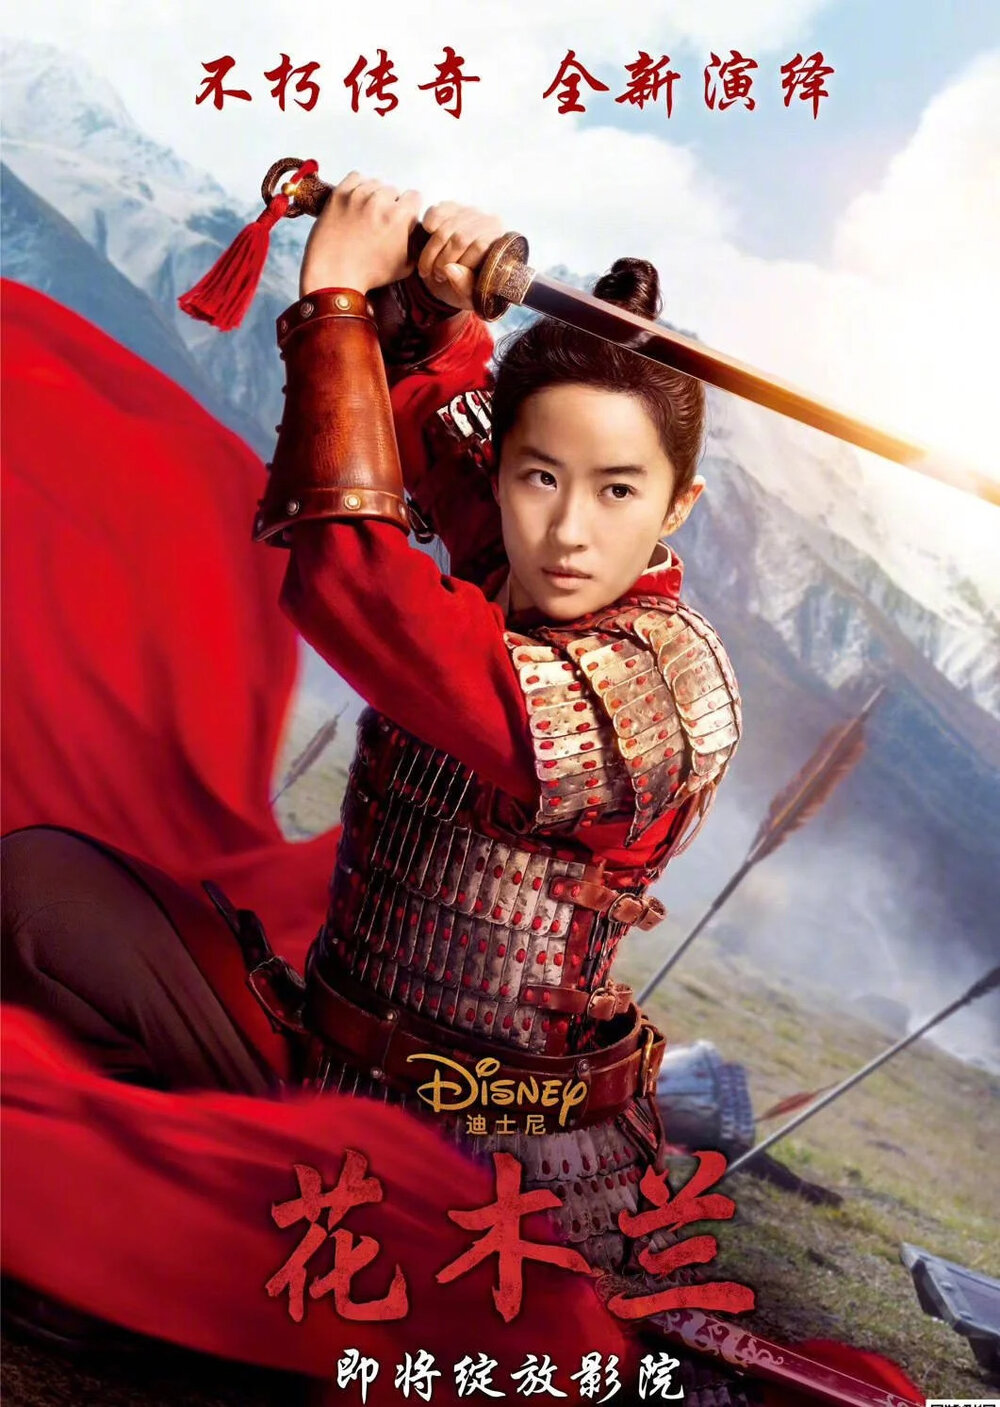 disneys-mulan-is-getting-a-theatrical-release-in-china-soon-and-the-new-poster-gets-some-fan-backlash2